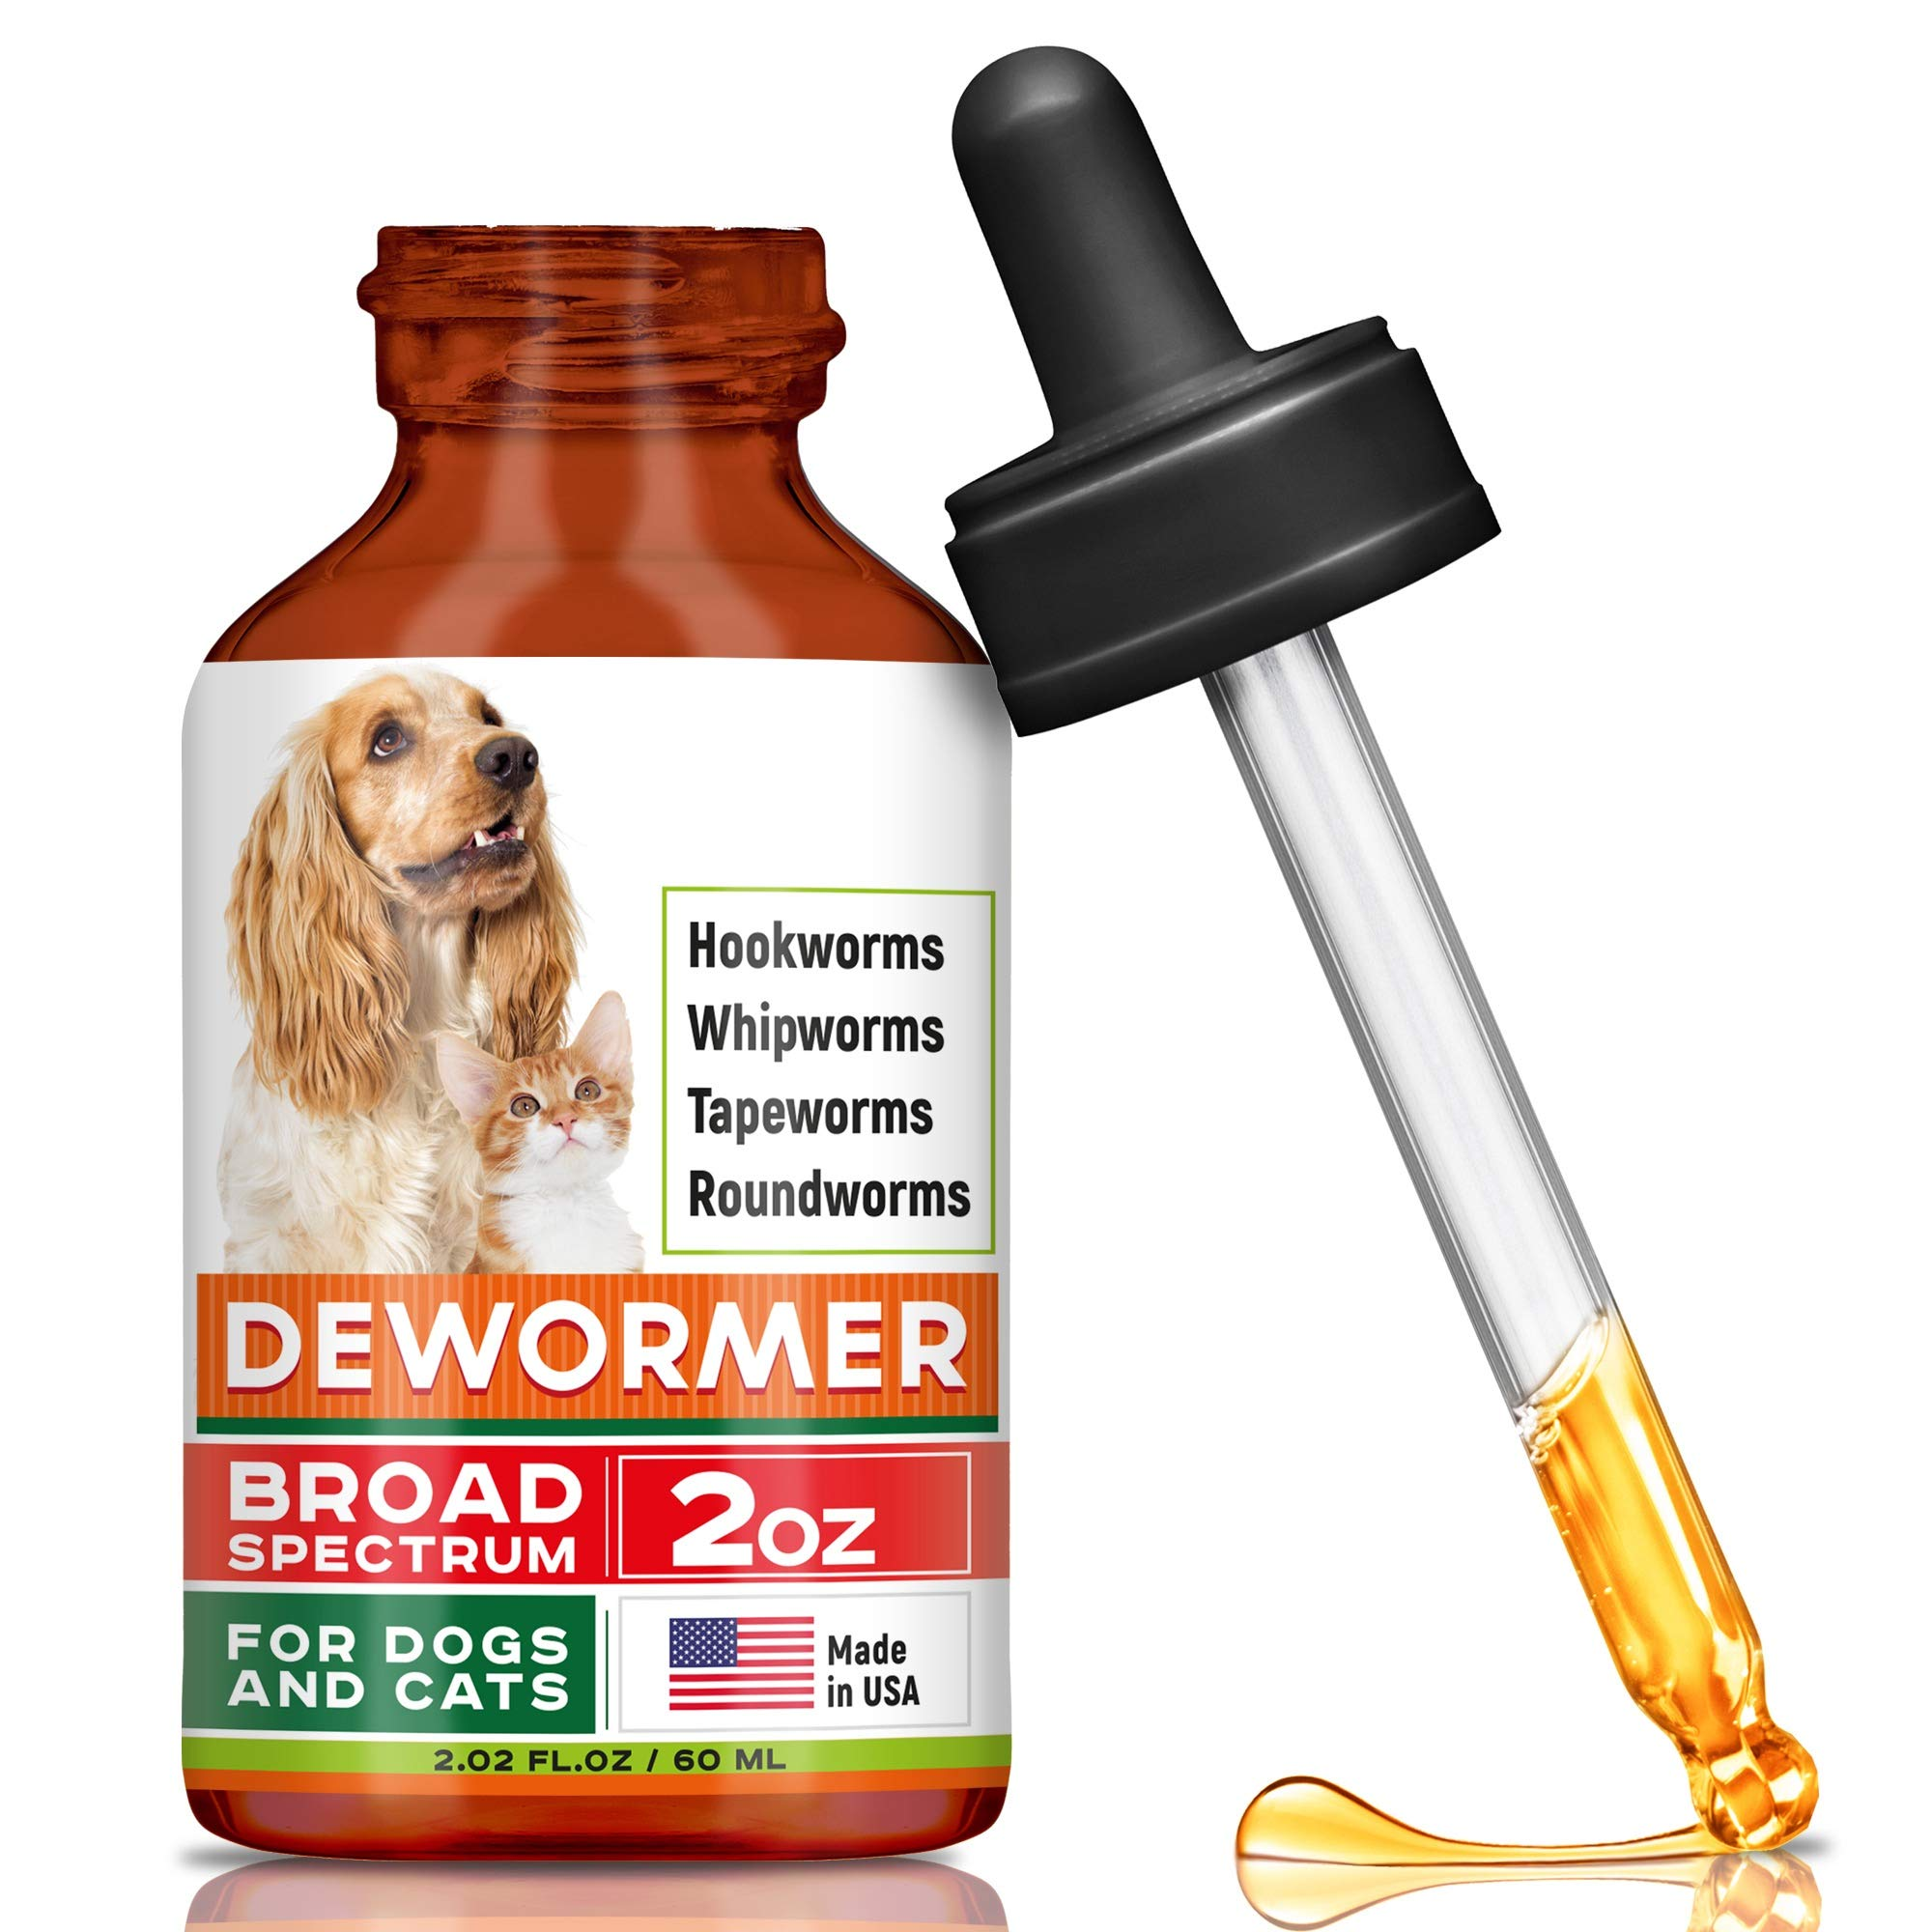 GOODGROWLIES Dewormer for Dogs and Cats - Made in USA Broad Spectrum Worm Treatment - Eliminates & Prevents Tapeworms, Roundworms, Hookworms, Whipworms - All Breeds and Size - Puppy & Kitten - 2oz by GOODGROWLIES